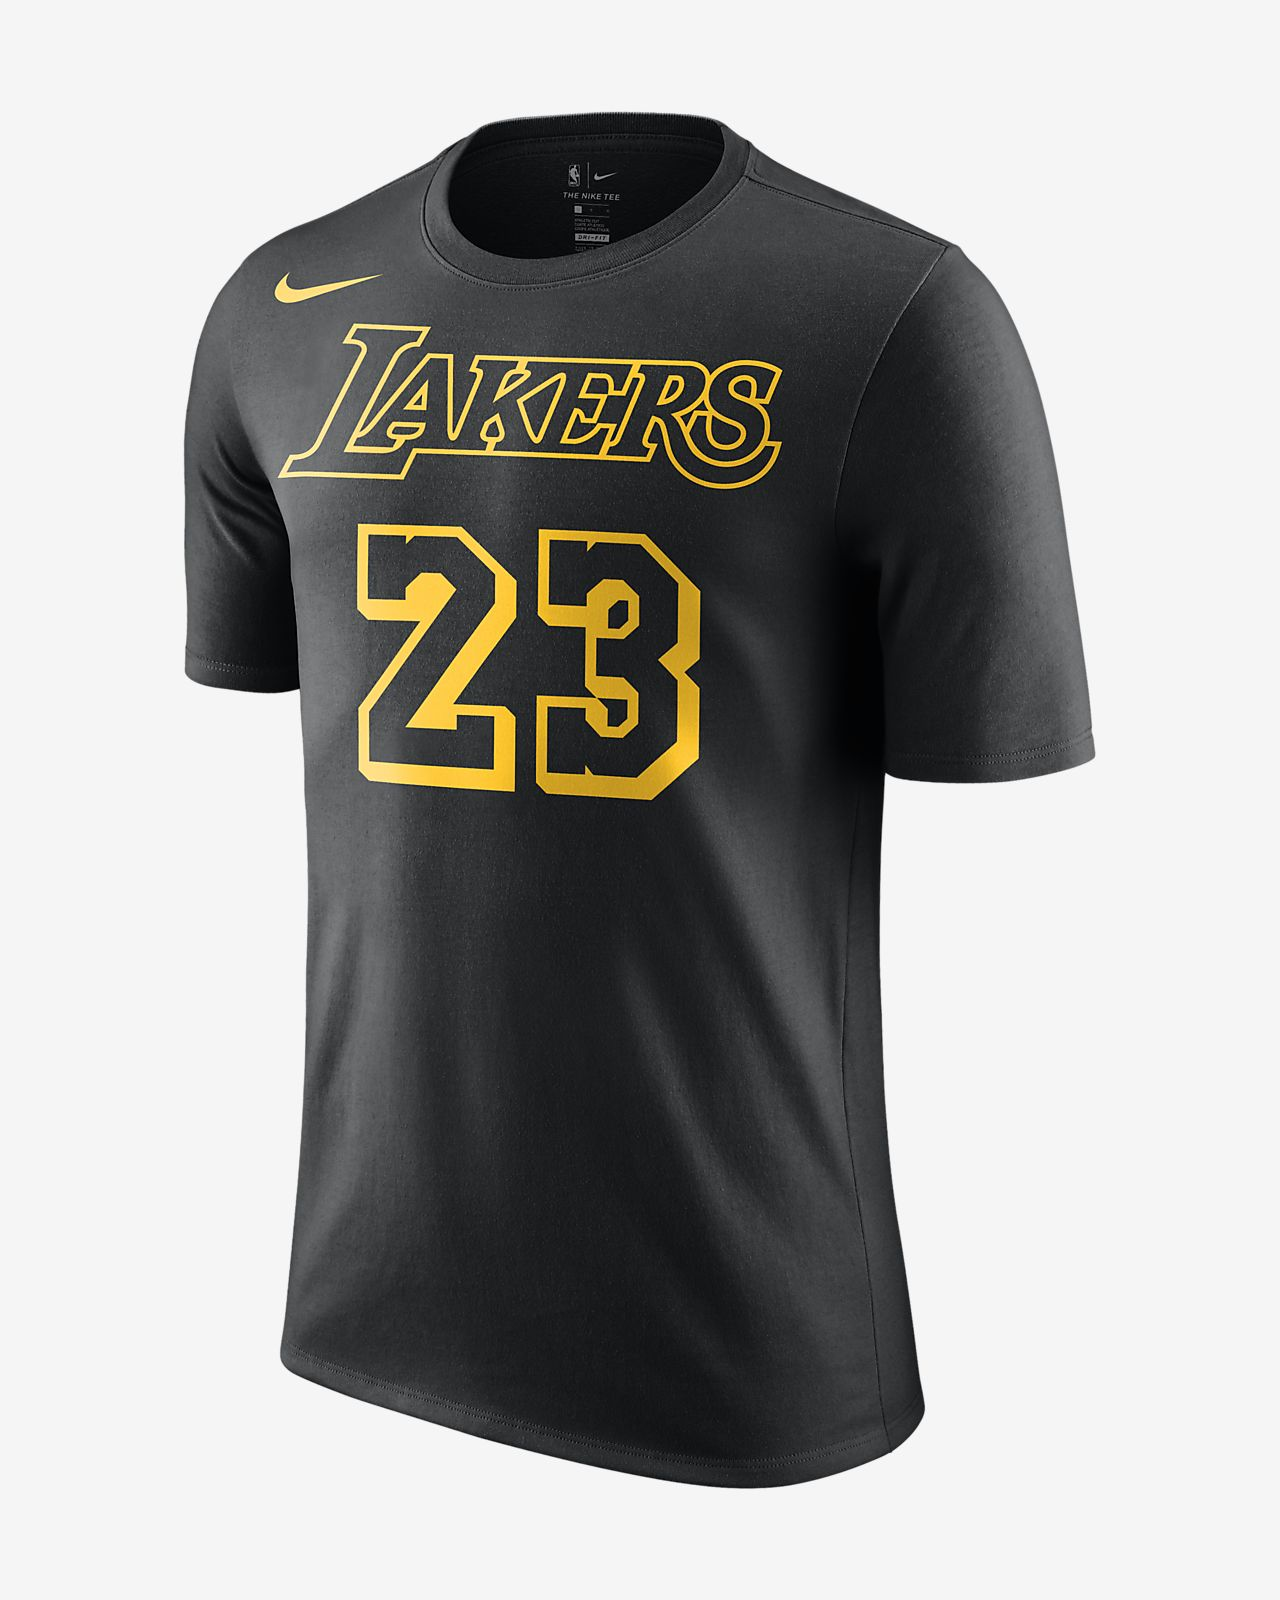 37d4893e ... Los Angeles Lakers Icon Name and Number (LeBron James) Big Kids' NBA T